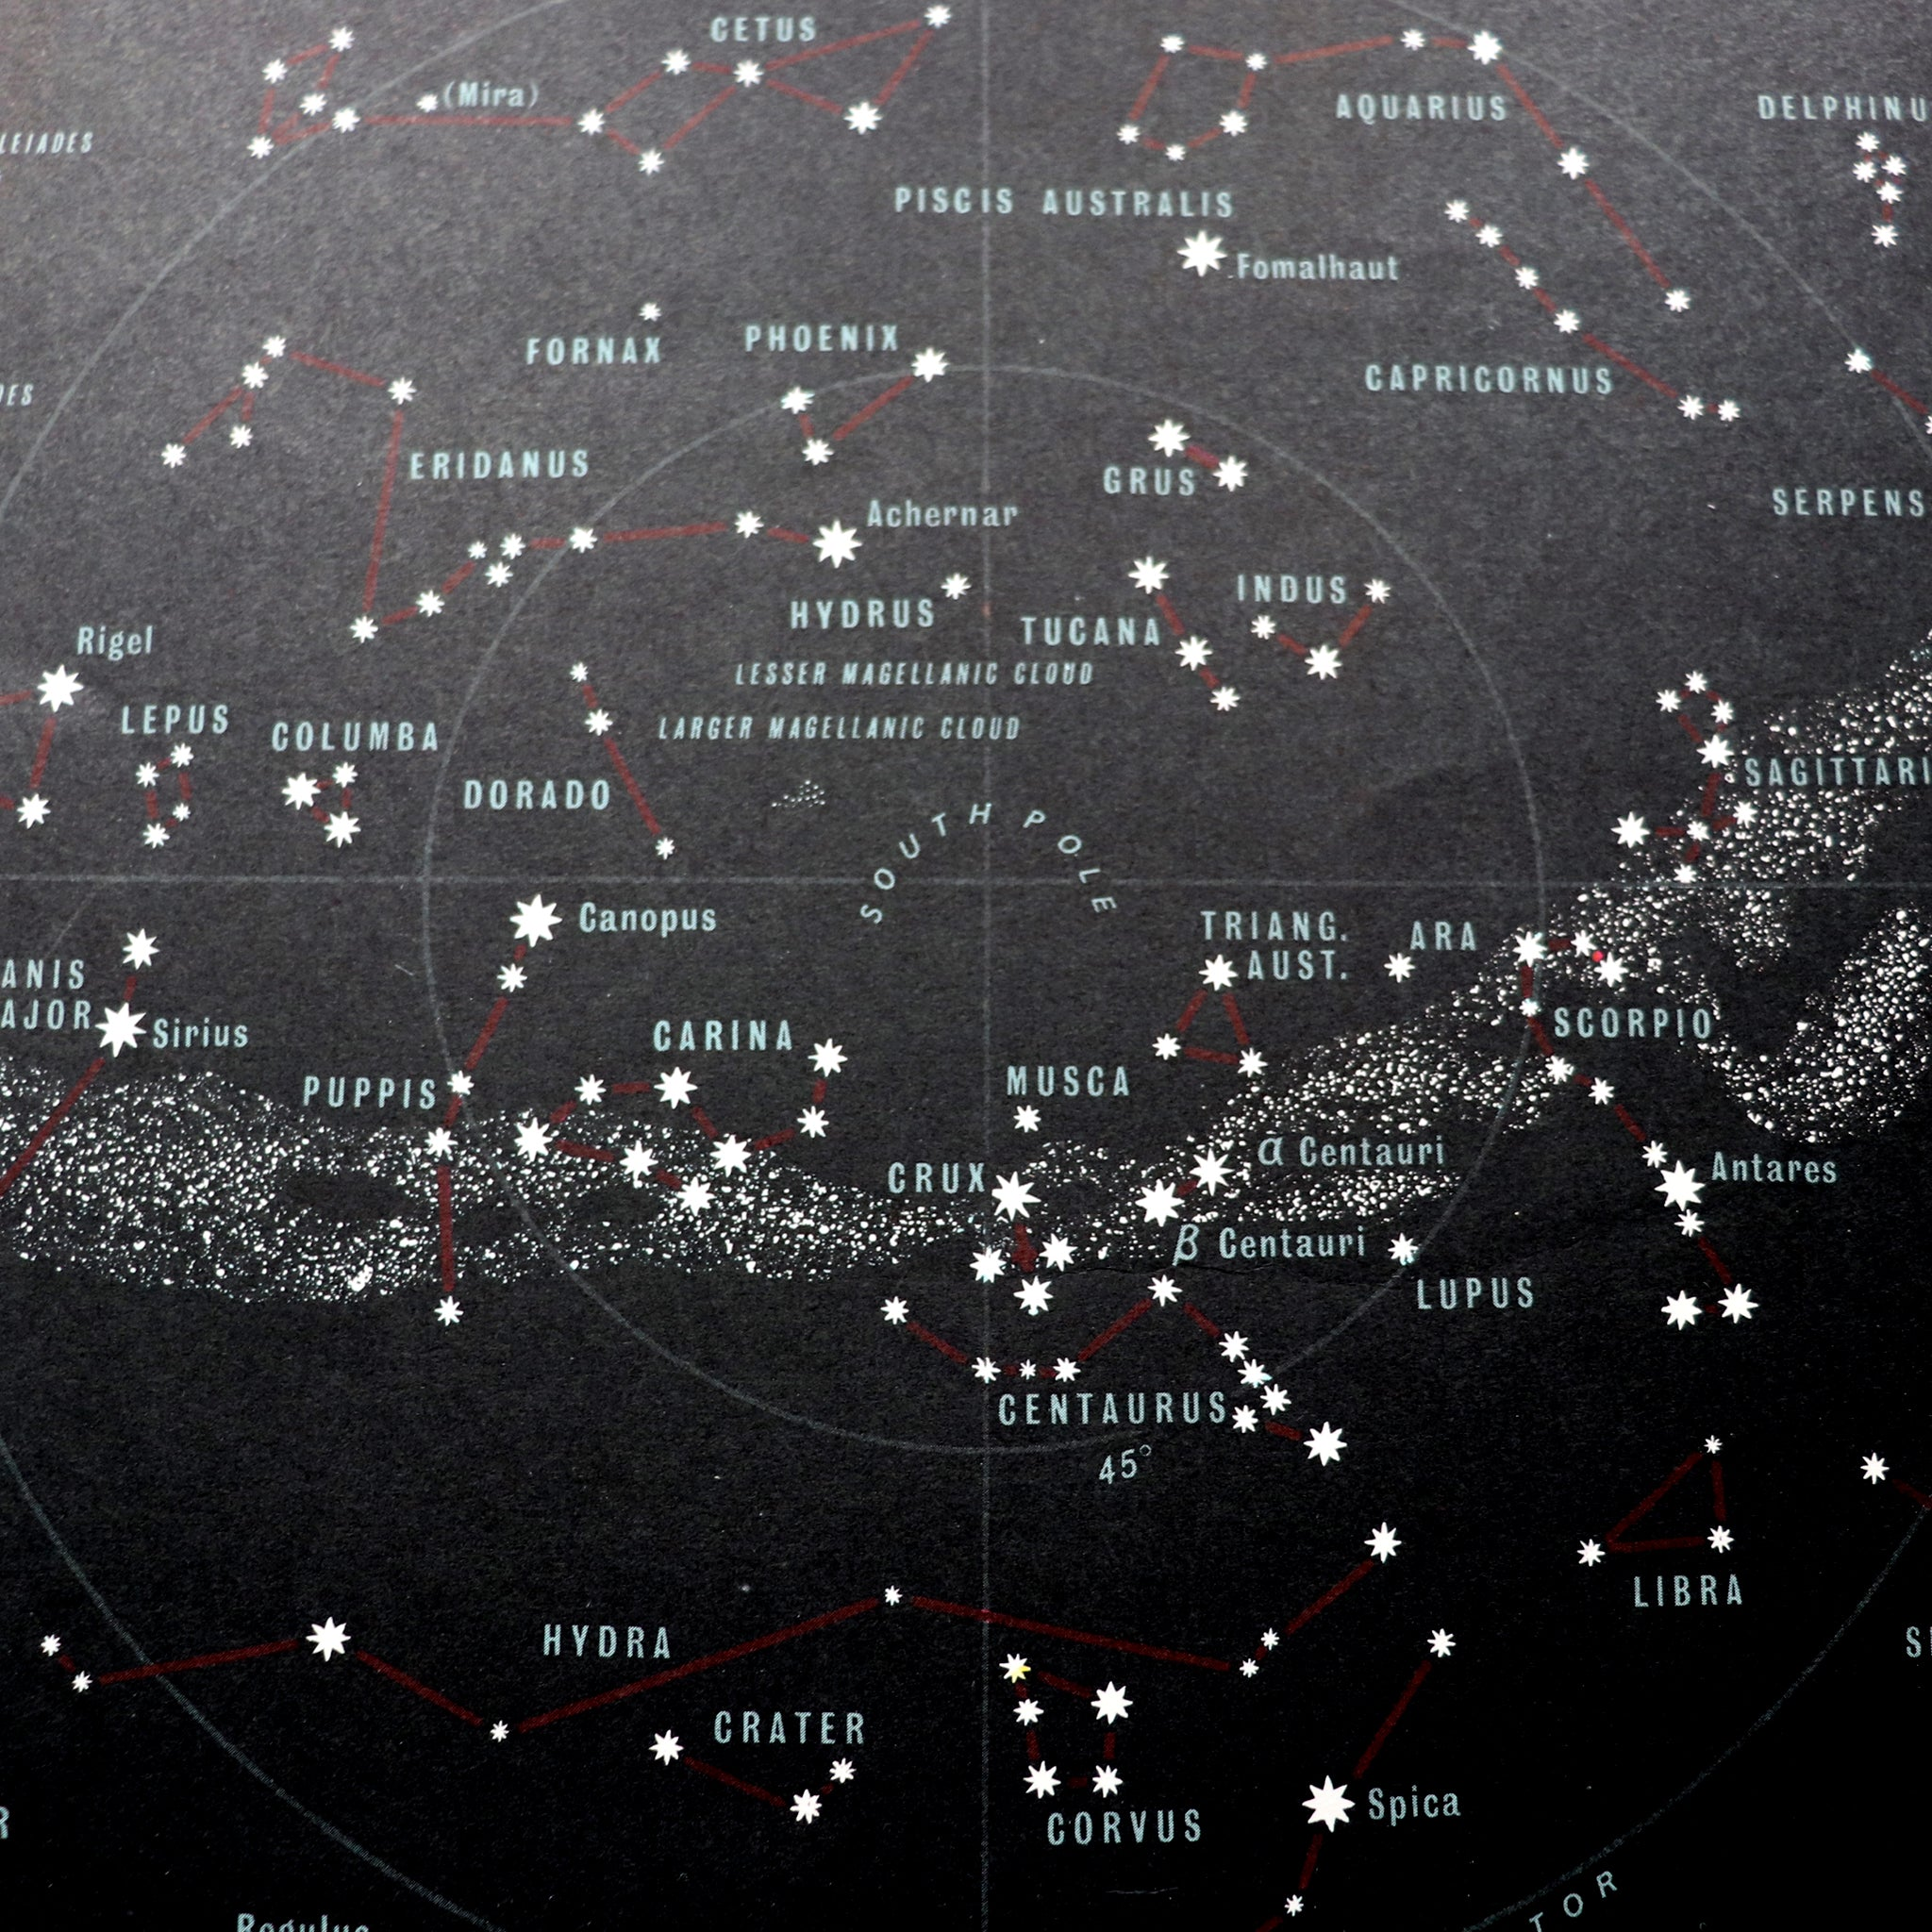 Black map of heavens featuring stars and constellations